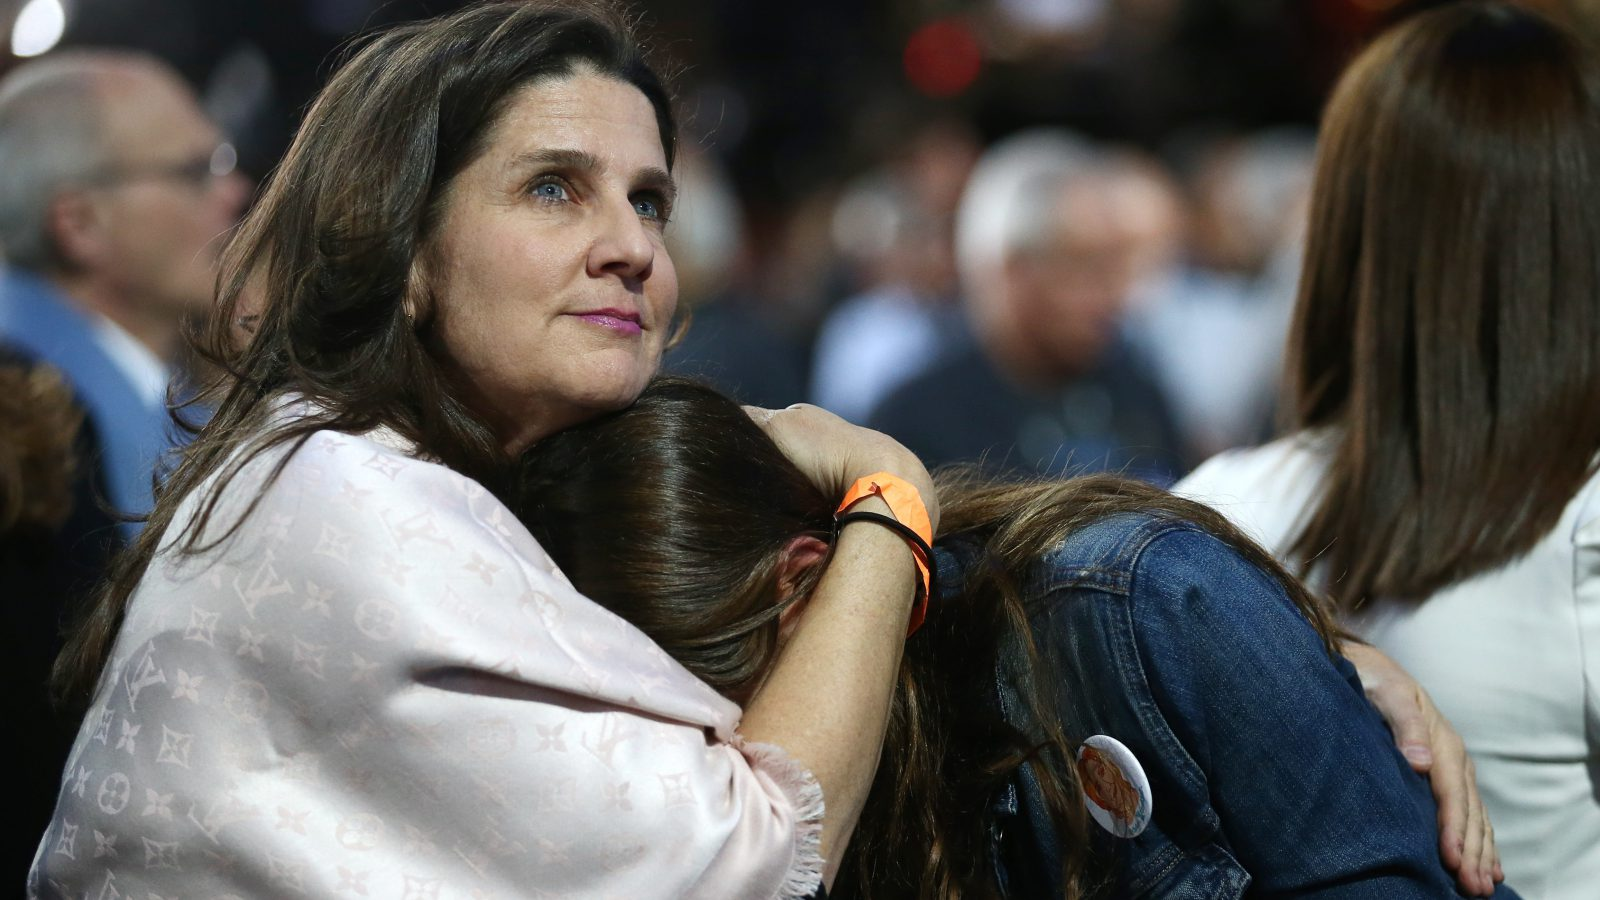 A Hillary Clinton supporter is comforted.